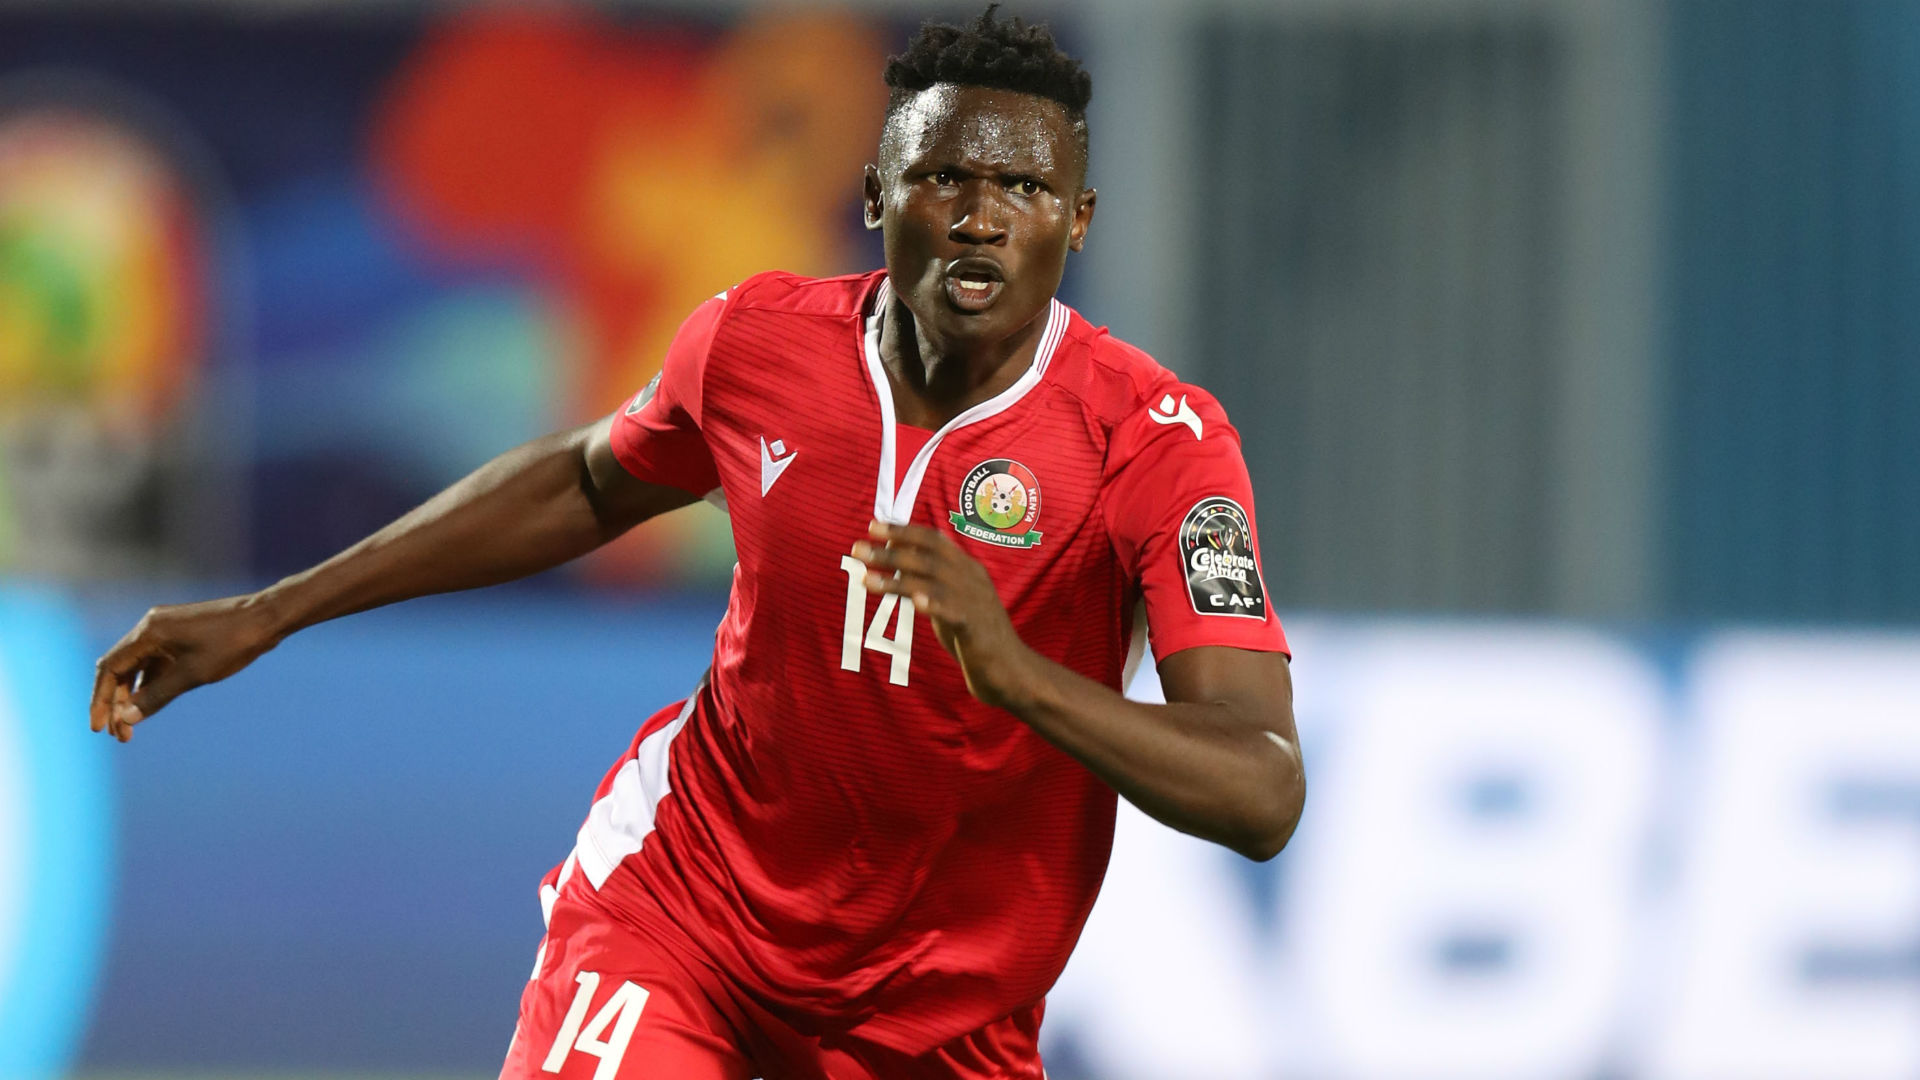 'Who is the GOAT?' – Kenyans compare Olunga to Ronaldo after goal frenzy in Japan